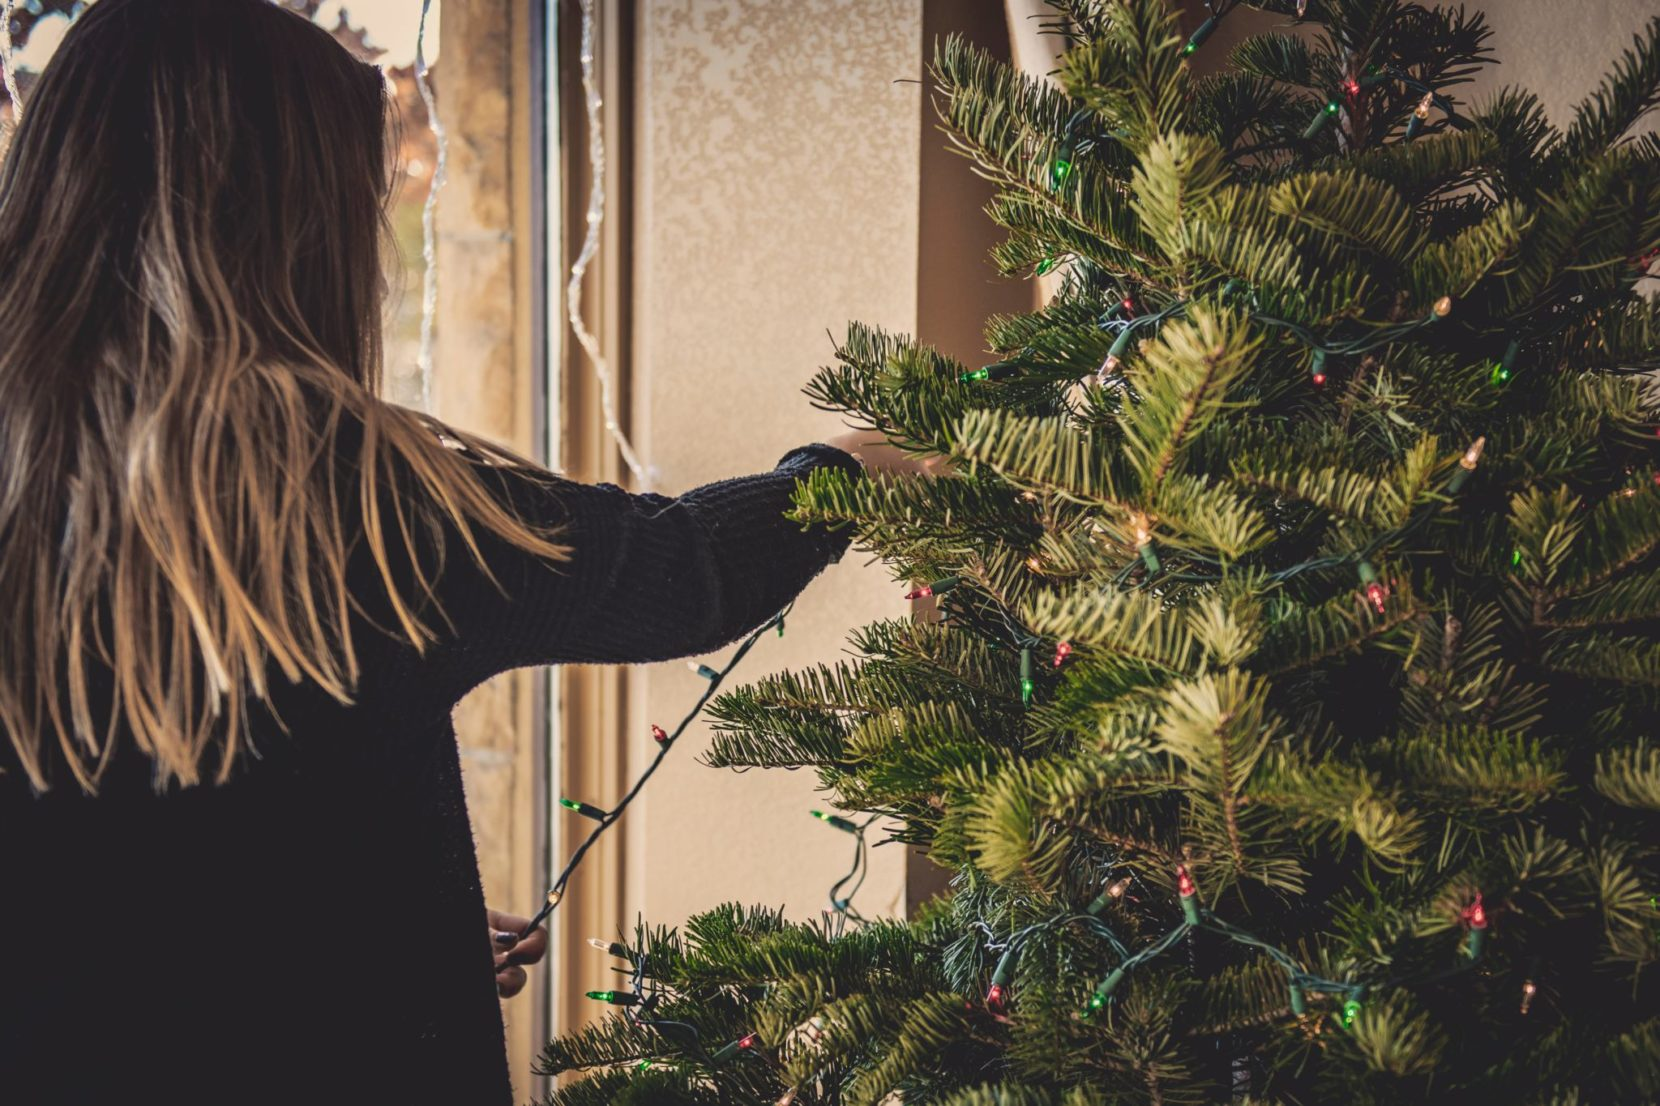 Where to get Christmas trees in the Jersey City area